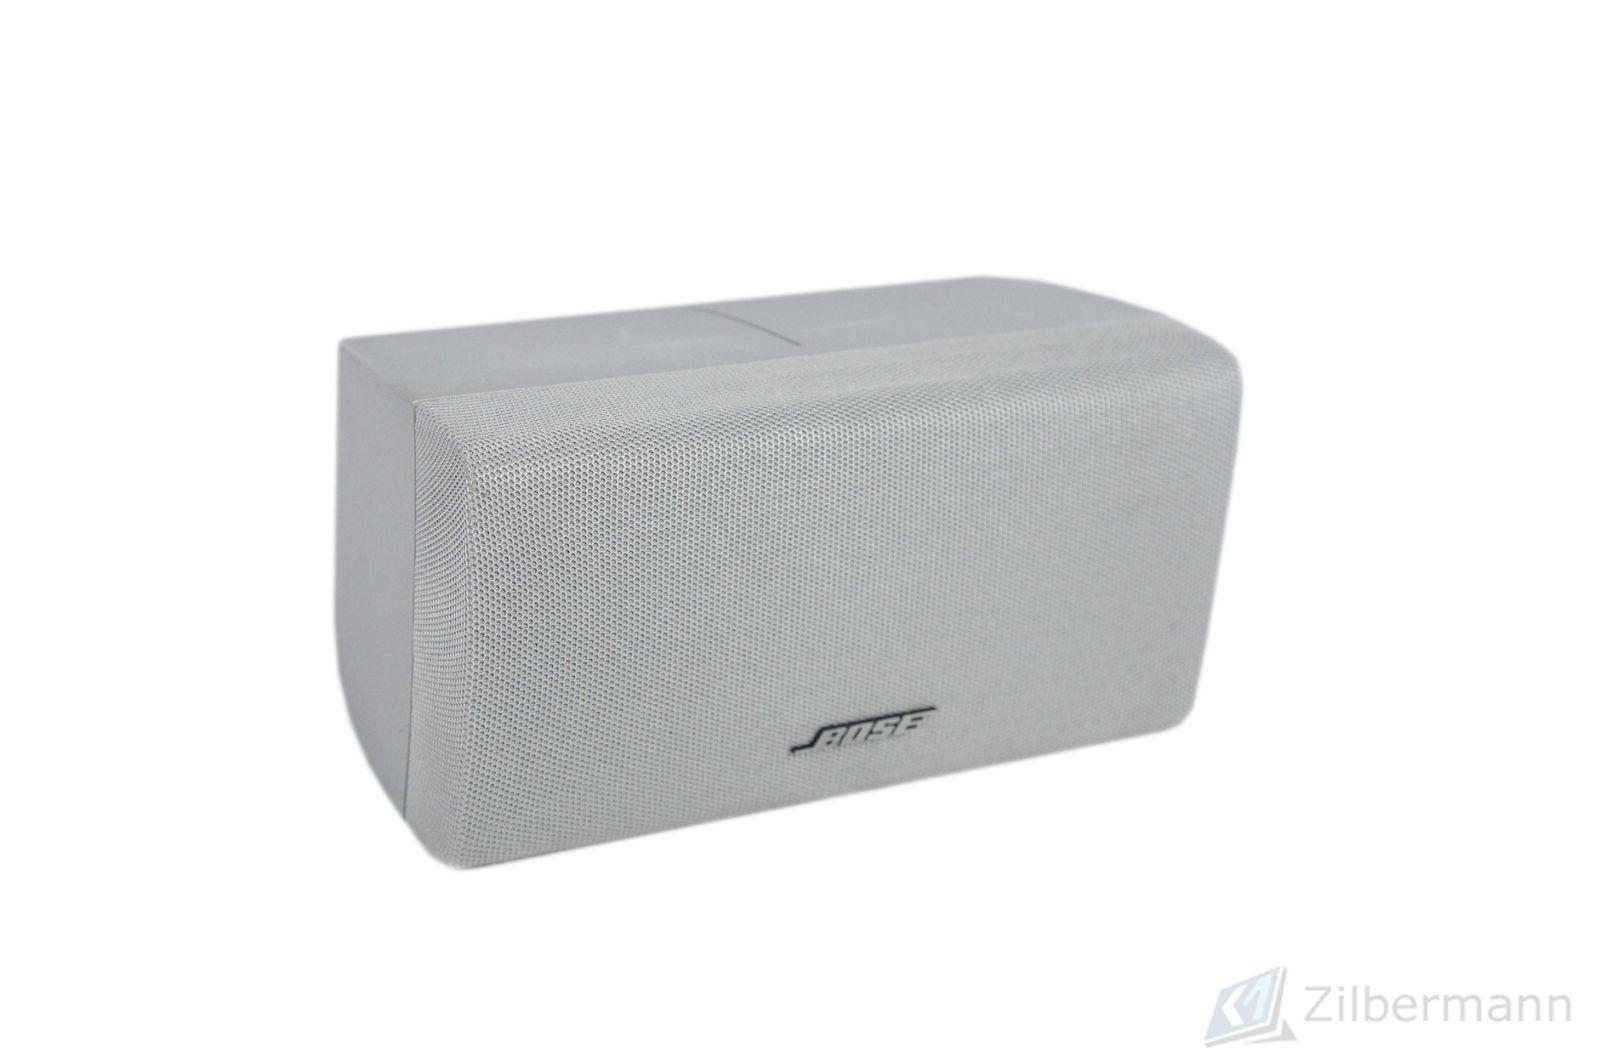 Bose_Acoustimass_Lifestyle_Center_Lautsprecher_Box_Satellite_Series_III_silber_04